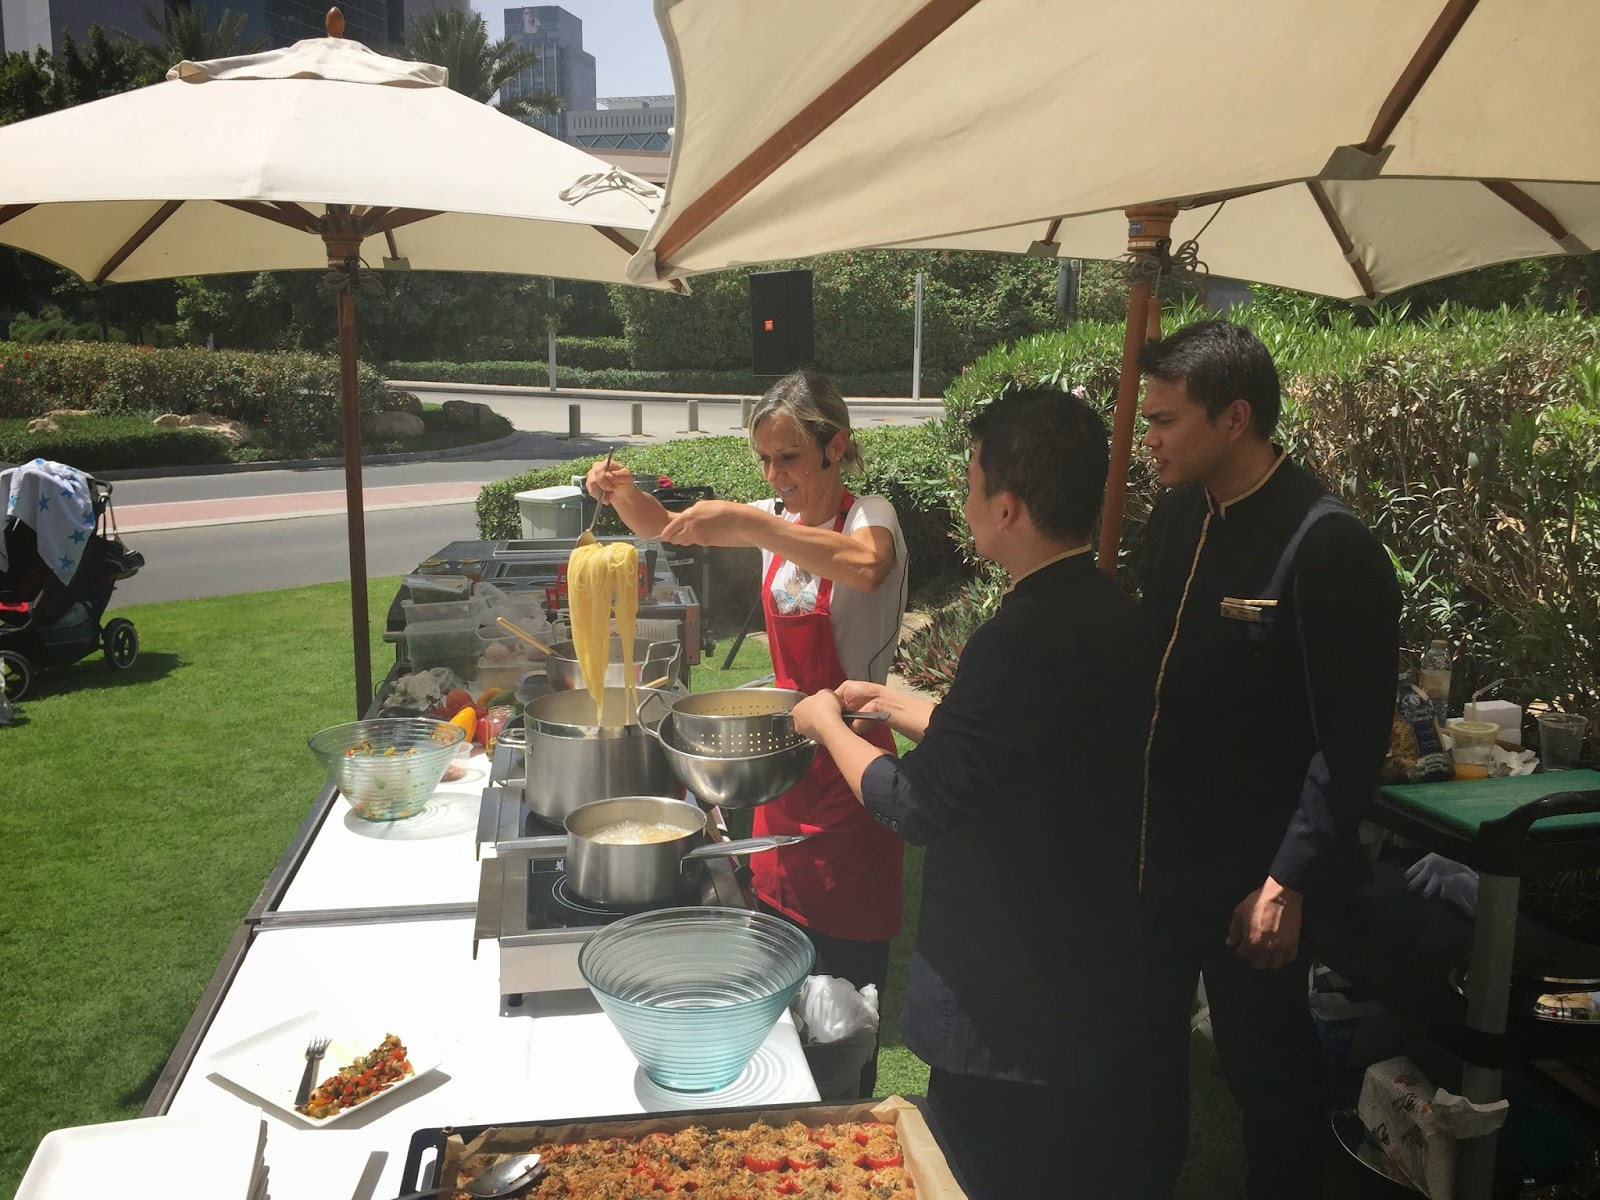 Cooking at the Farmers Market on the Terrace: pasta, pasta, pasta